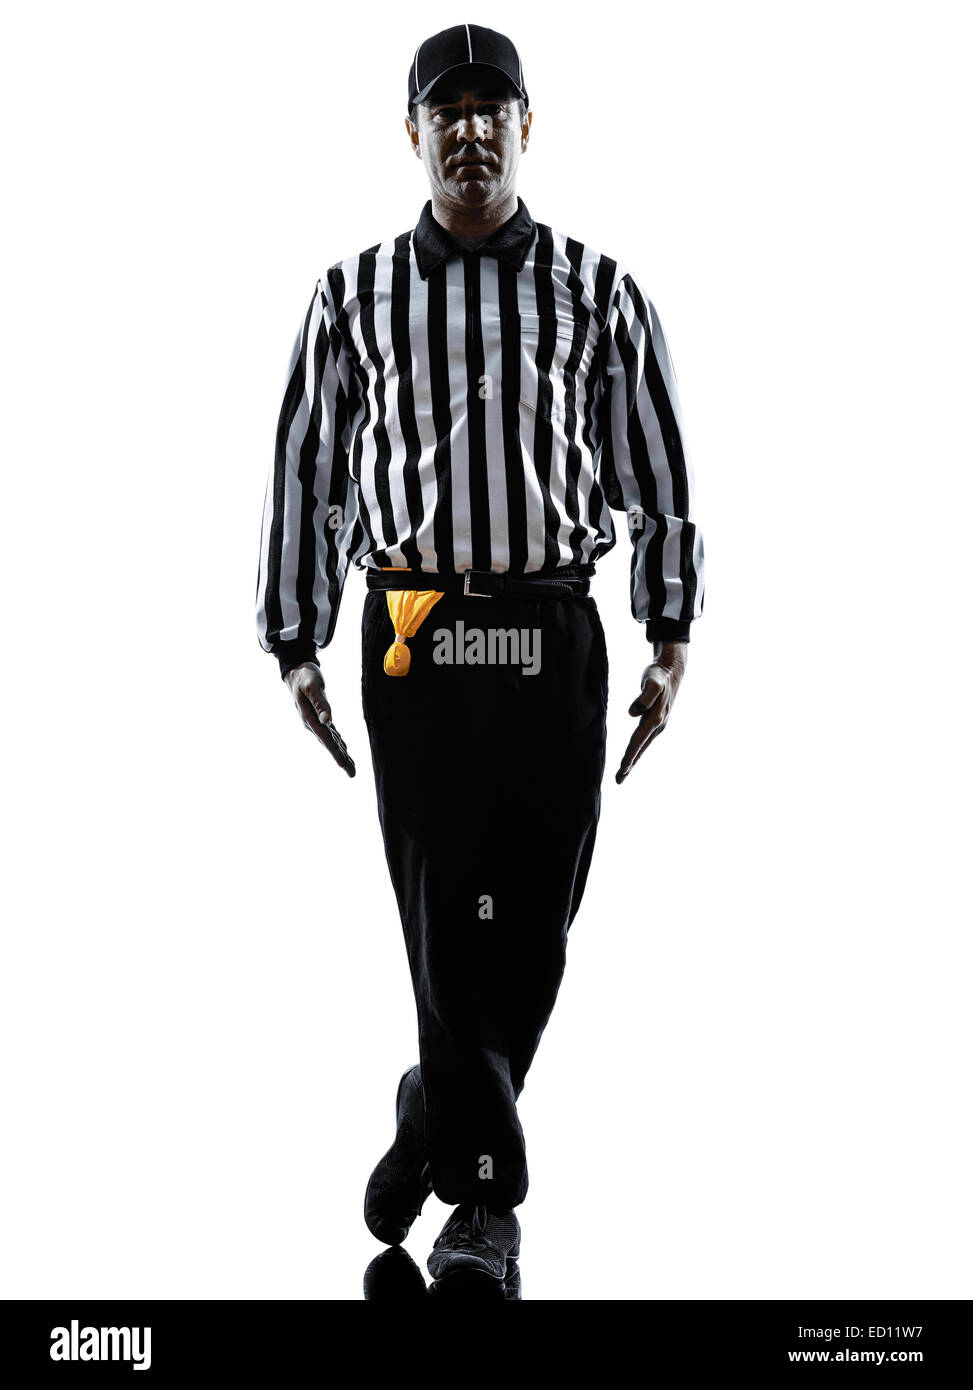 american football referee gestures tripping in silhouette on white background - Stock Image